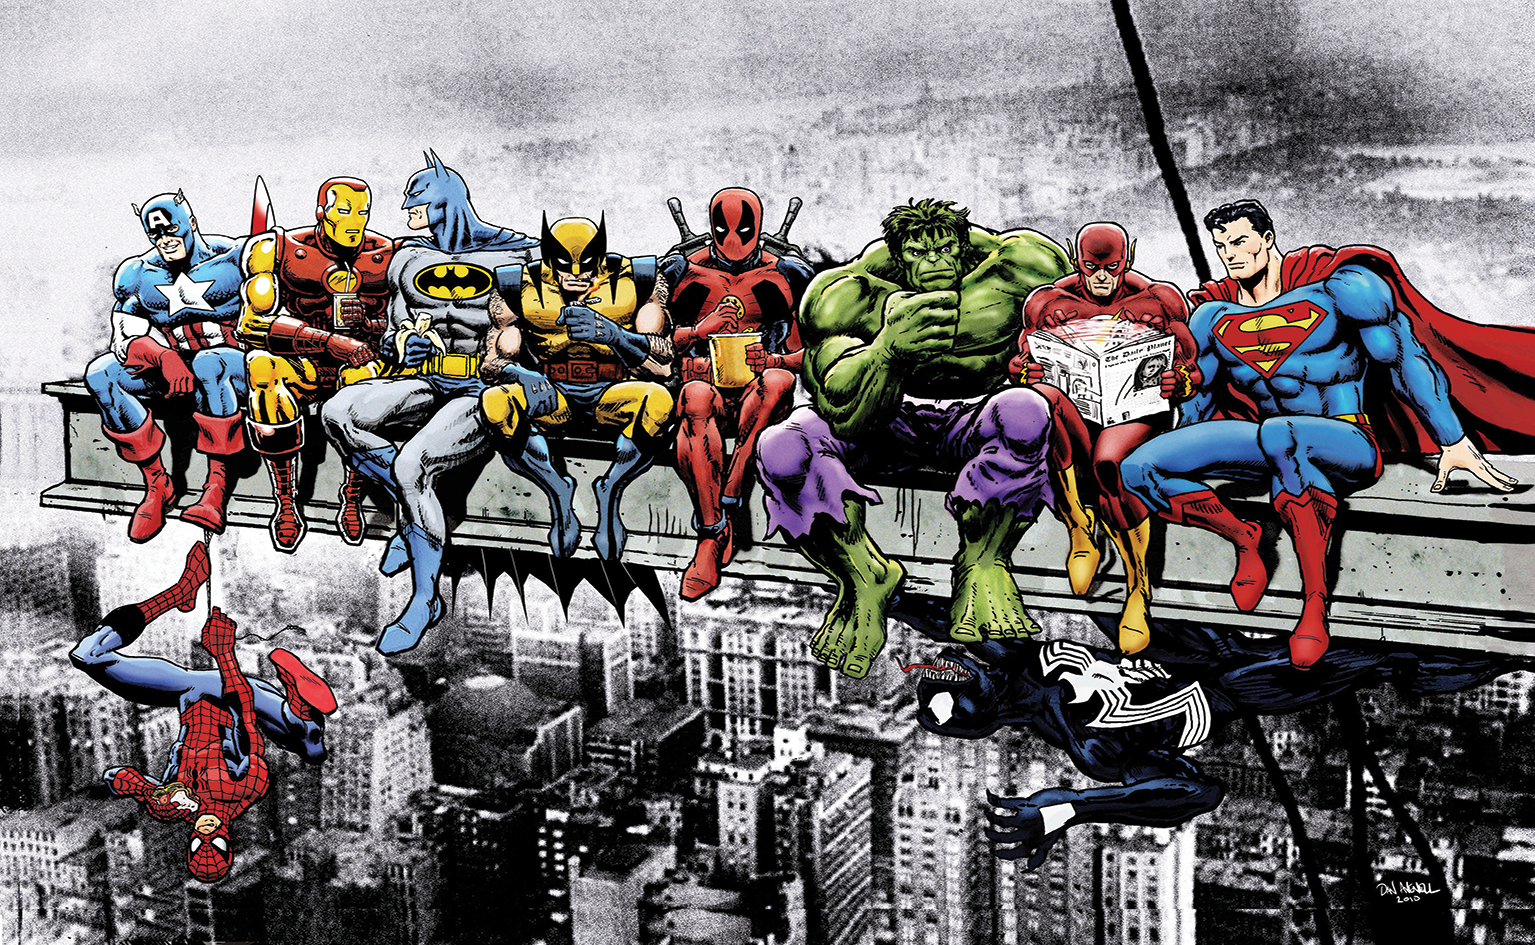 Marvel Superheroes Lunch Atop A Skyscraper Breakfast Of